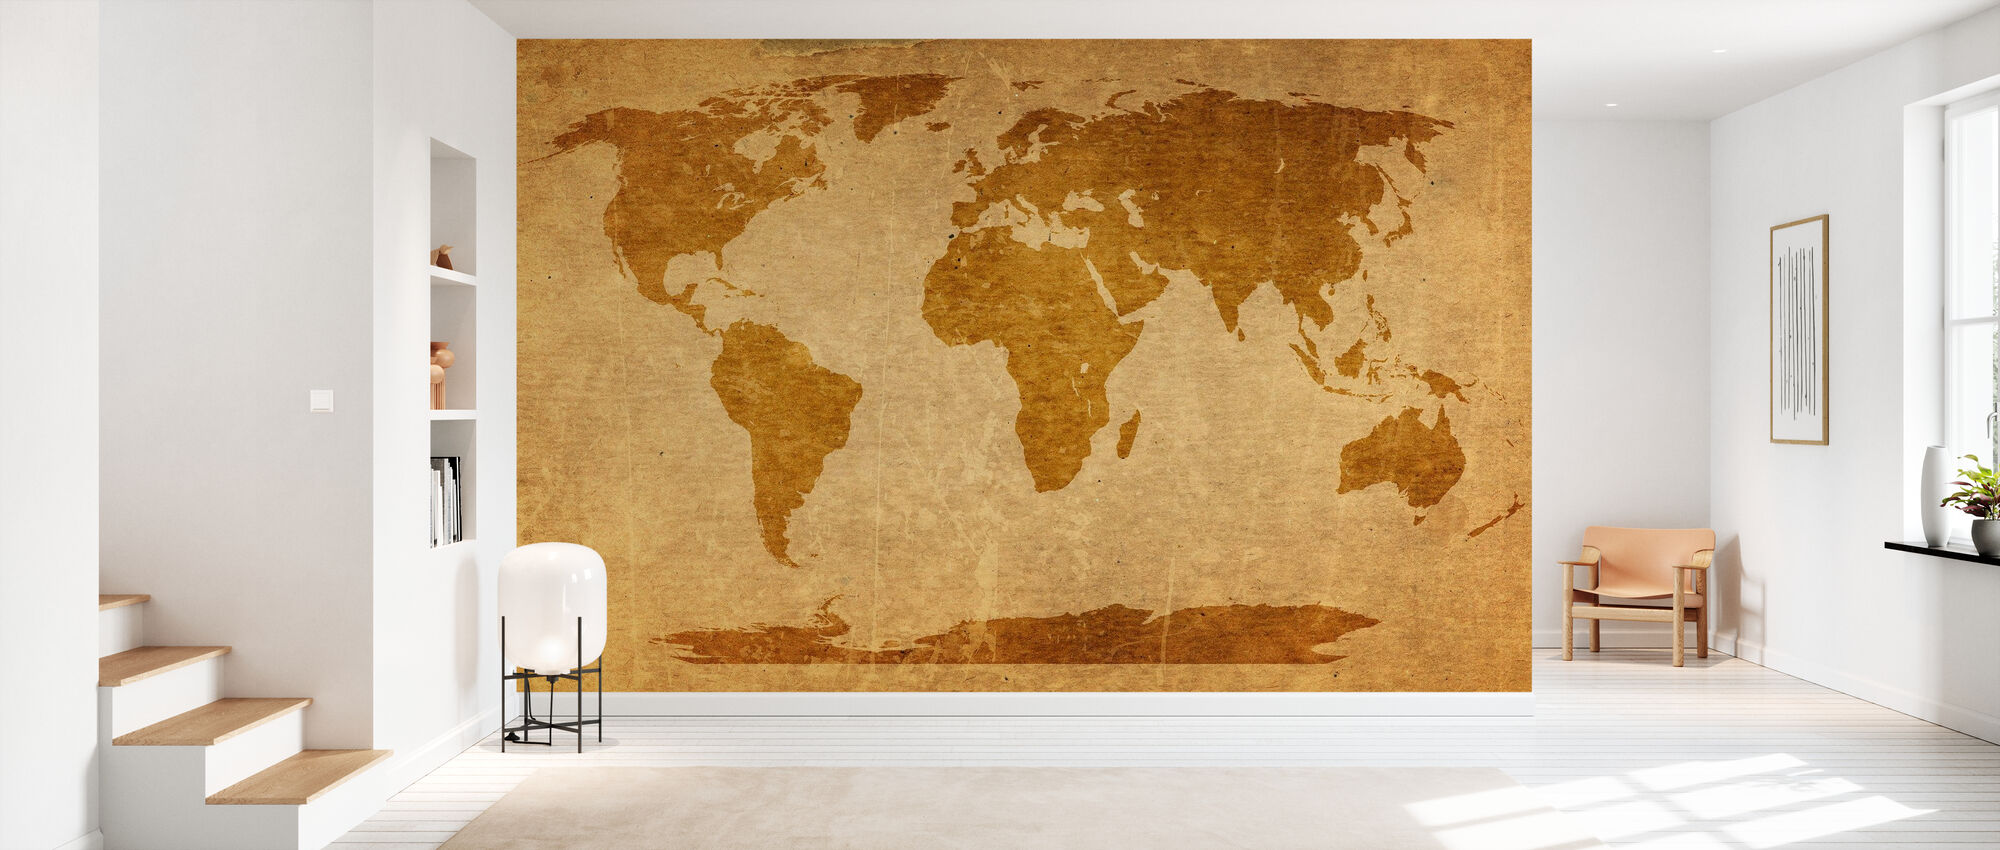 Sepia World Map - Wallpaper - Hallway